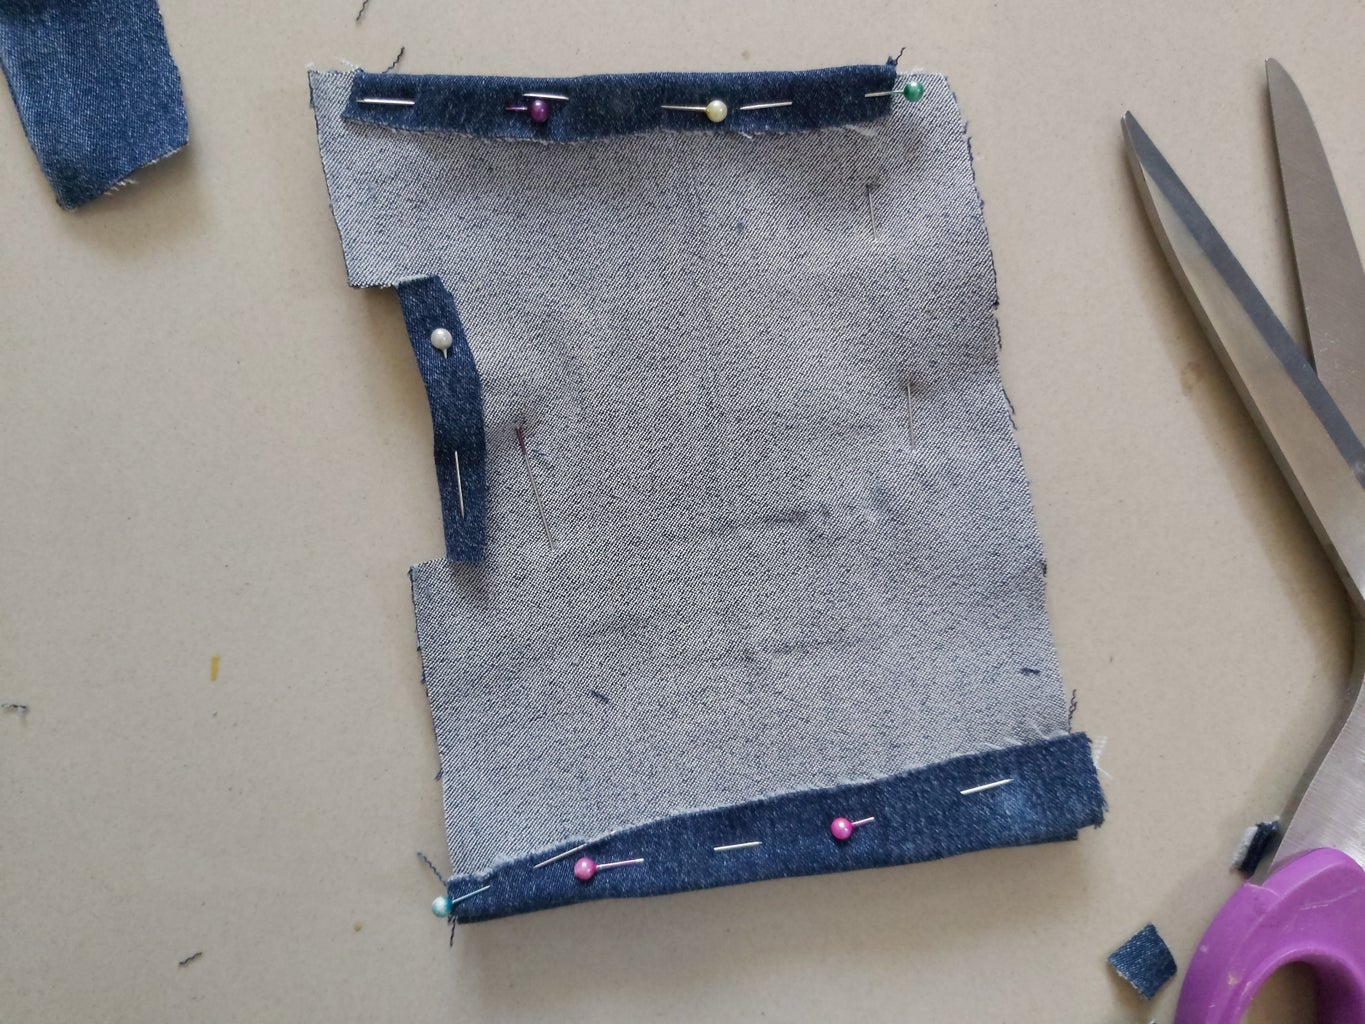 Cutting the Template and Fabric